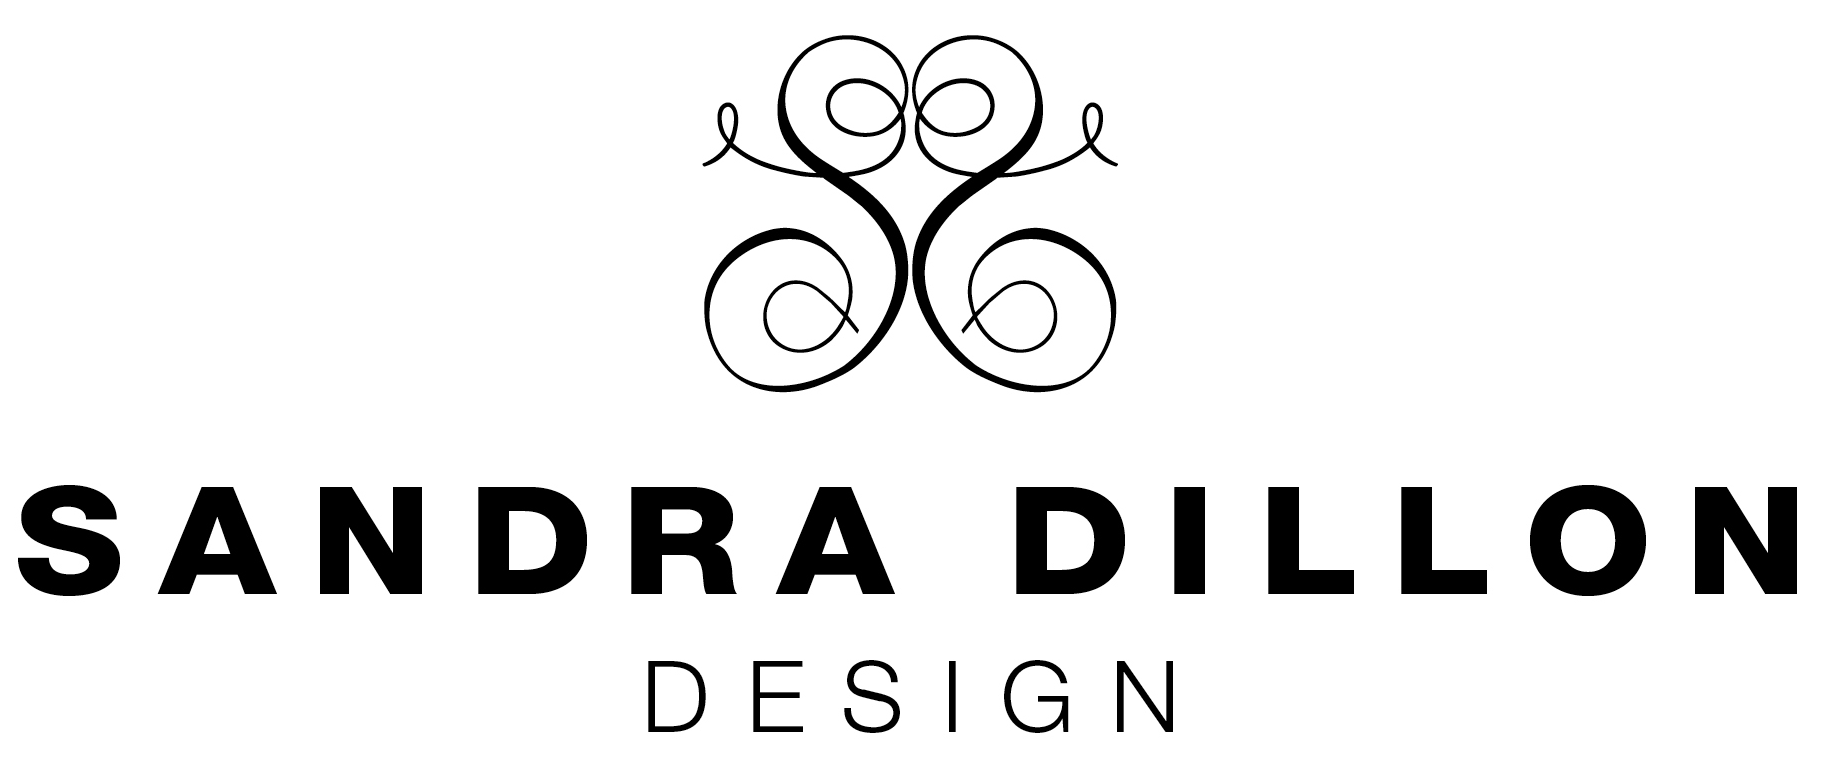 SANDRA DILLON DESIGN